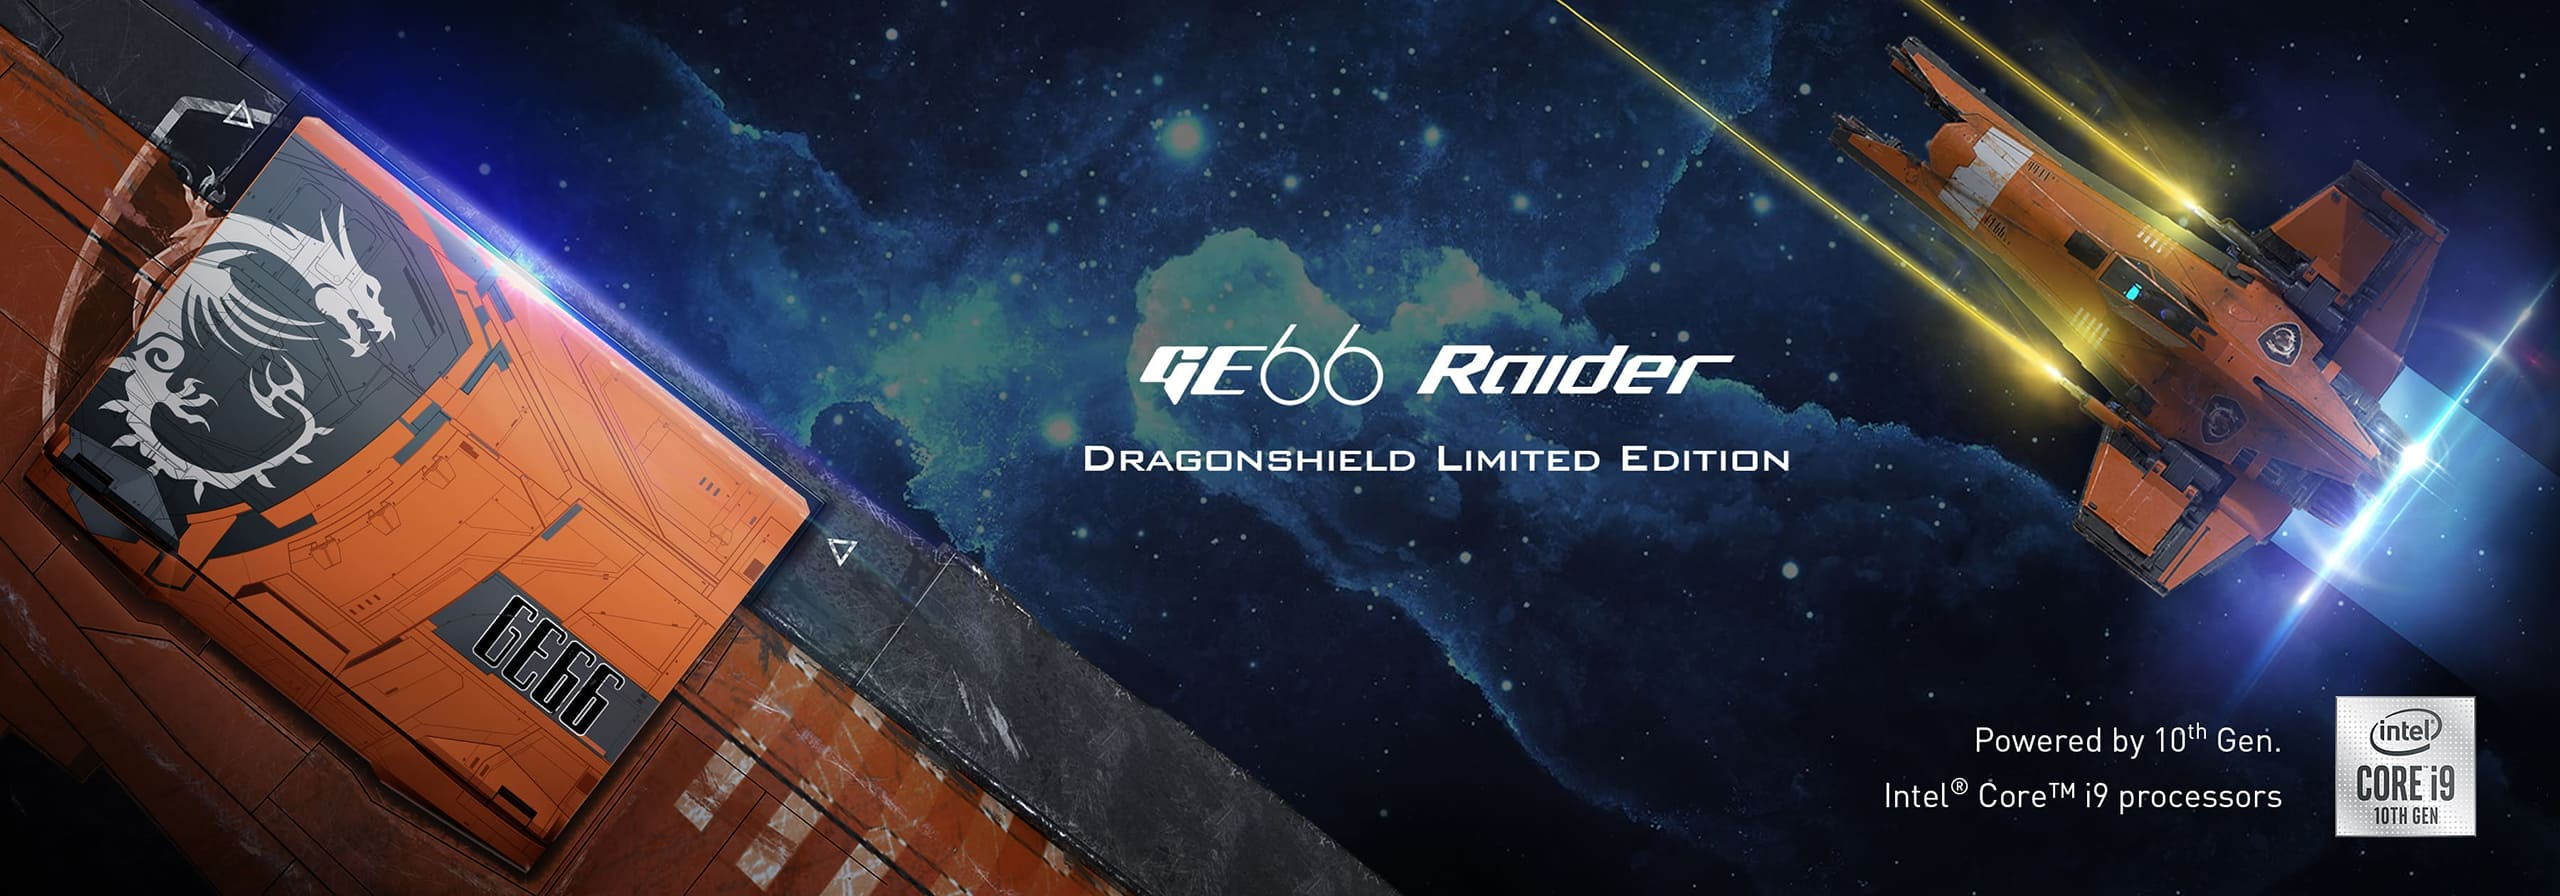 GE66 Raider Dragonshield Limited-Edition Banner